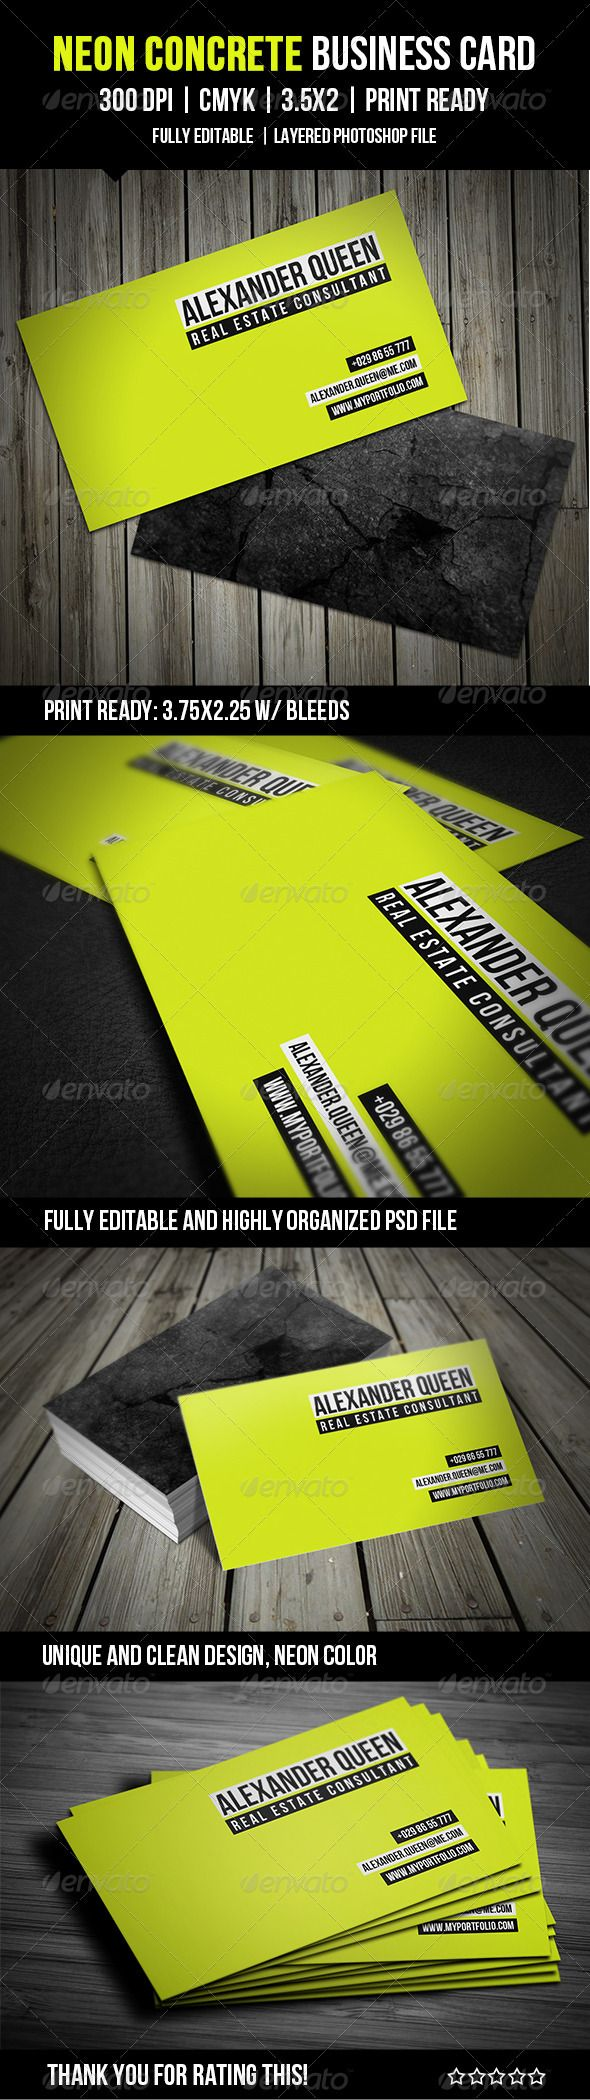 Neon Concrete Business Card - GraphicRiver Item for Sale